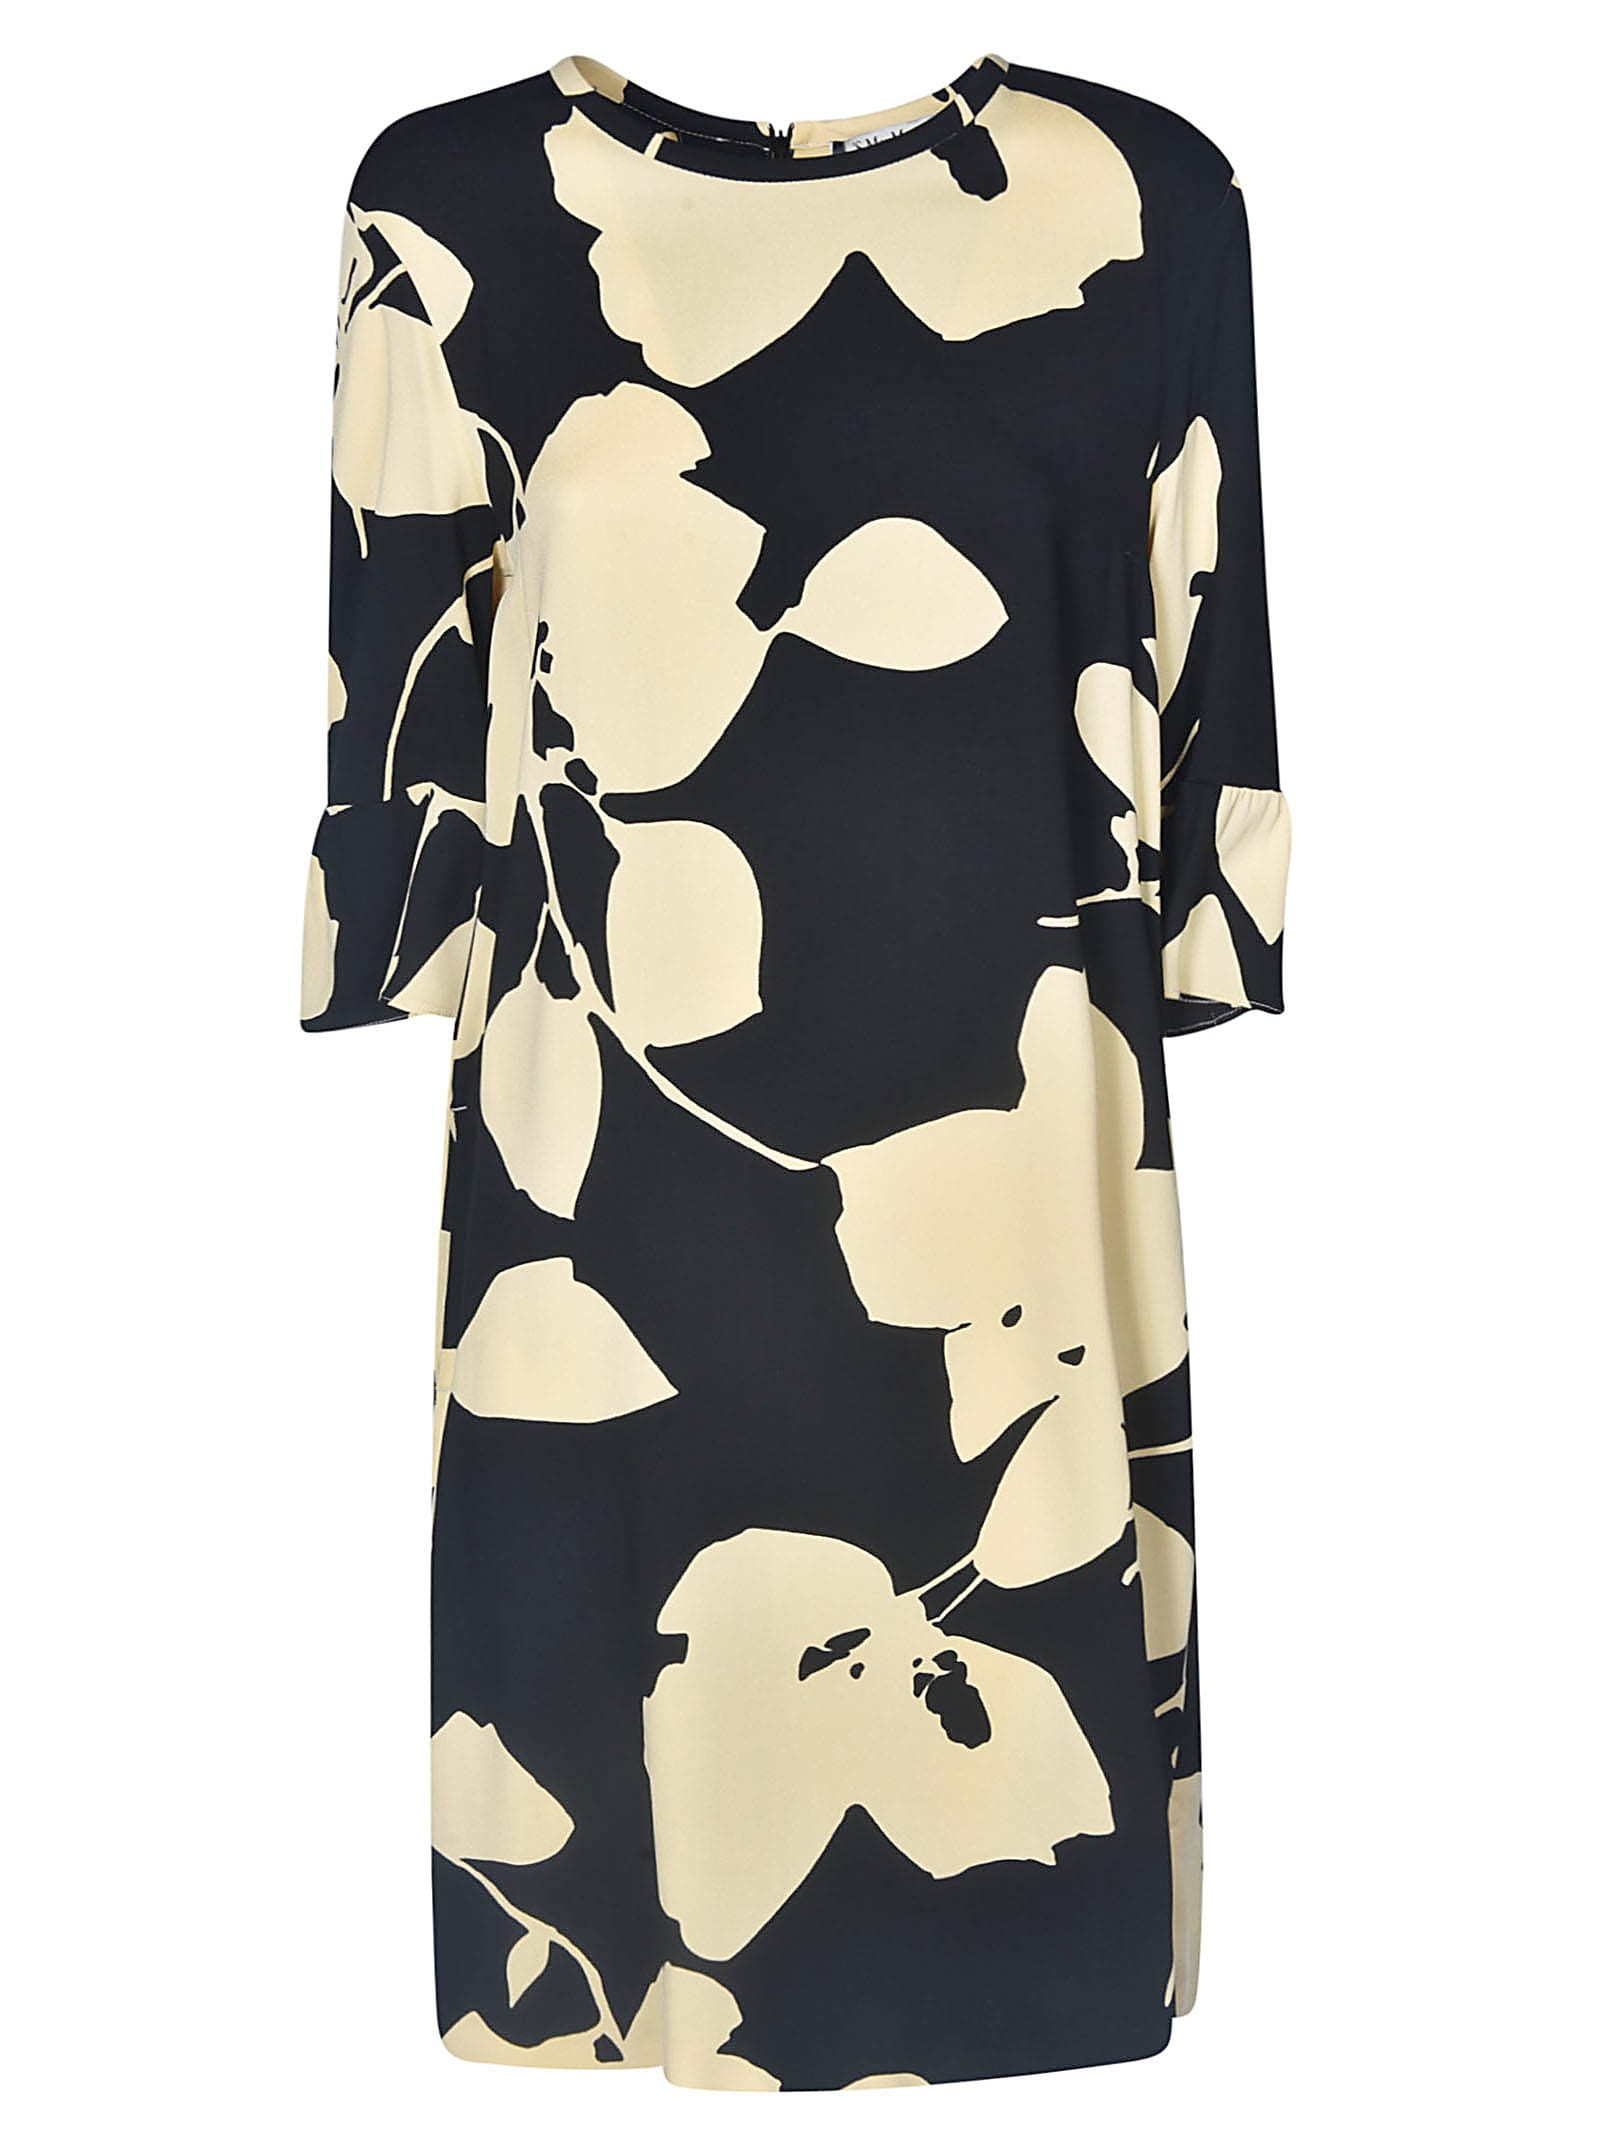 Buy Max Mara The Cube Leafy Print Dress online, shop Max Mara The Cube with free shipping